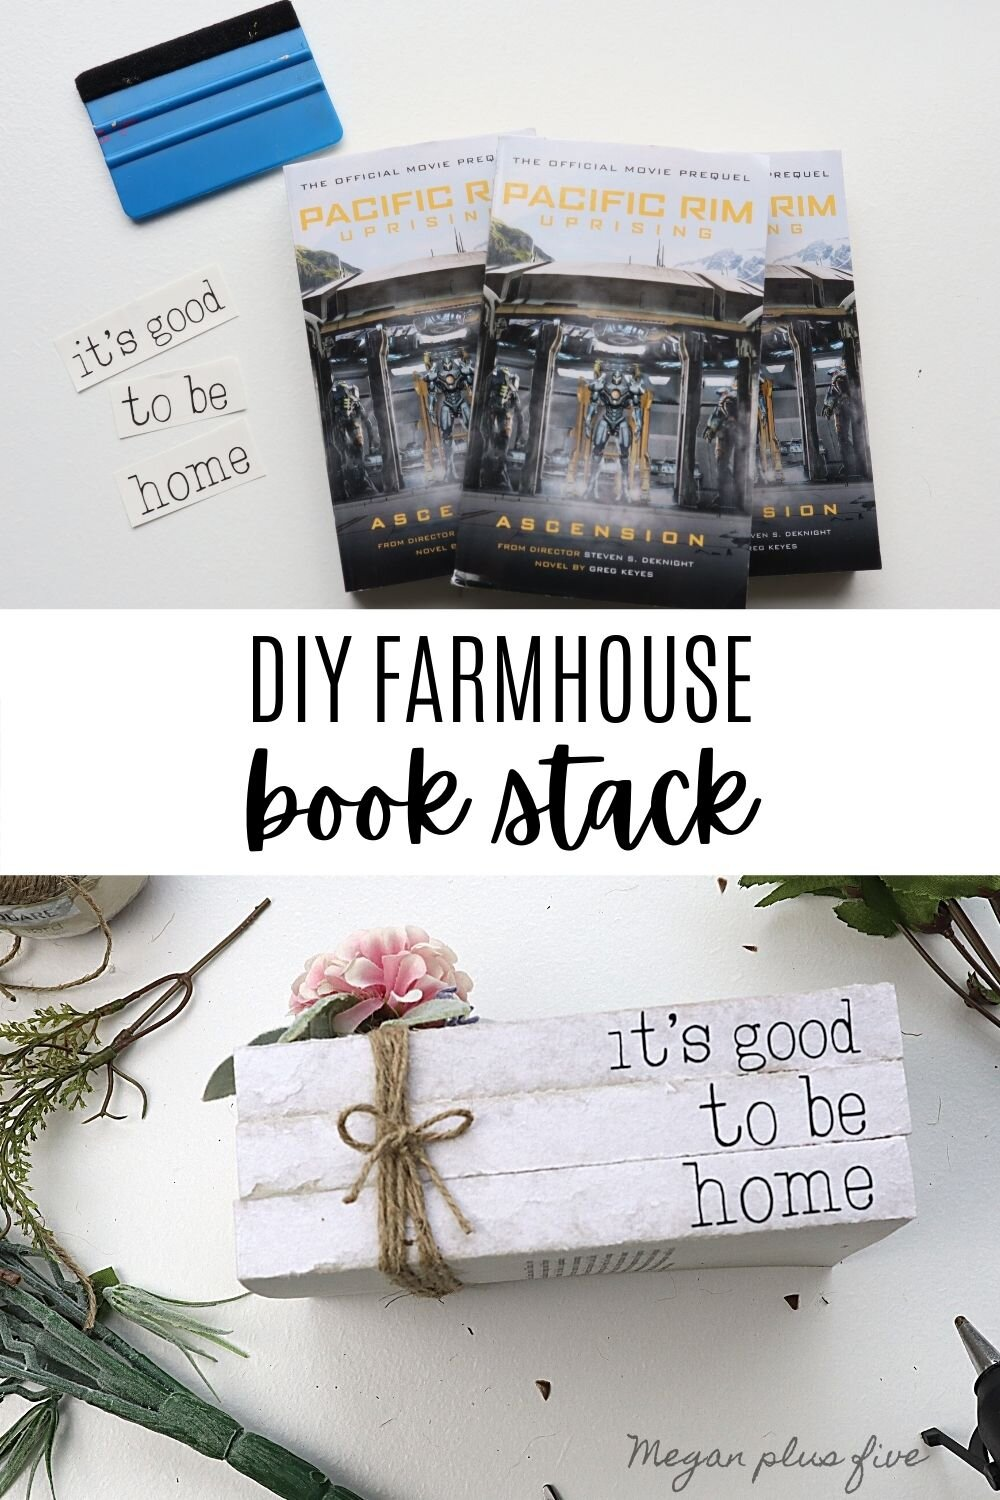 DIY farmhouse book stack using real book and vinyl decals from your Cricut cutting machine. Make your own simple rustic book stack easy & simple from Dollar Tree books.